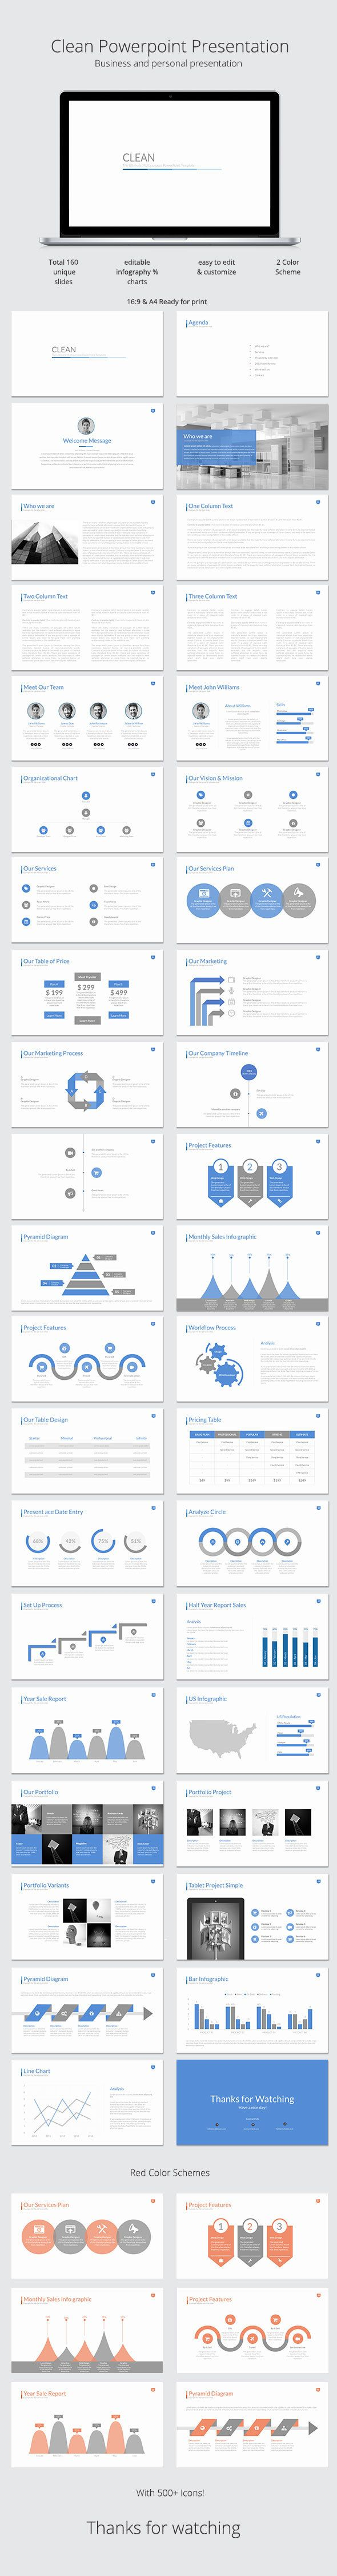 Usdgus  Unusual  Ideas About Presentation On Pinterest  Presentation  With Magnificent Clean Powerpoint Presentation Template Design Slides Download Httpgraphicriver With Beauteous Powerpoint Art Also Buy Powerpoint In Addition Convert Powerpoint To Google Slides And Jeopardy Game Powerpoint As Well As Powerpoint Venn Diagram Additionally Download Powerpoint For Mac From Pinterestcom With Usdgus  Magnificent  Ideas About Presentation On Pinterest  Presentation  With Beauteous Clean Powerpoint Presentation Template Design Slides Download Httpgraphicriver And Unusual Powerpoint Art Also Buy Powerpoint In Addition Convert Powerpoint To Google Slides From Pinterestcom